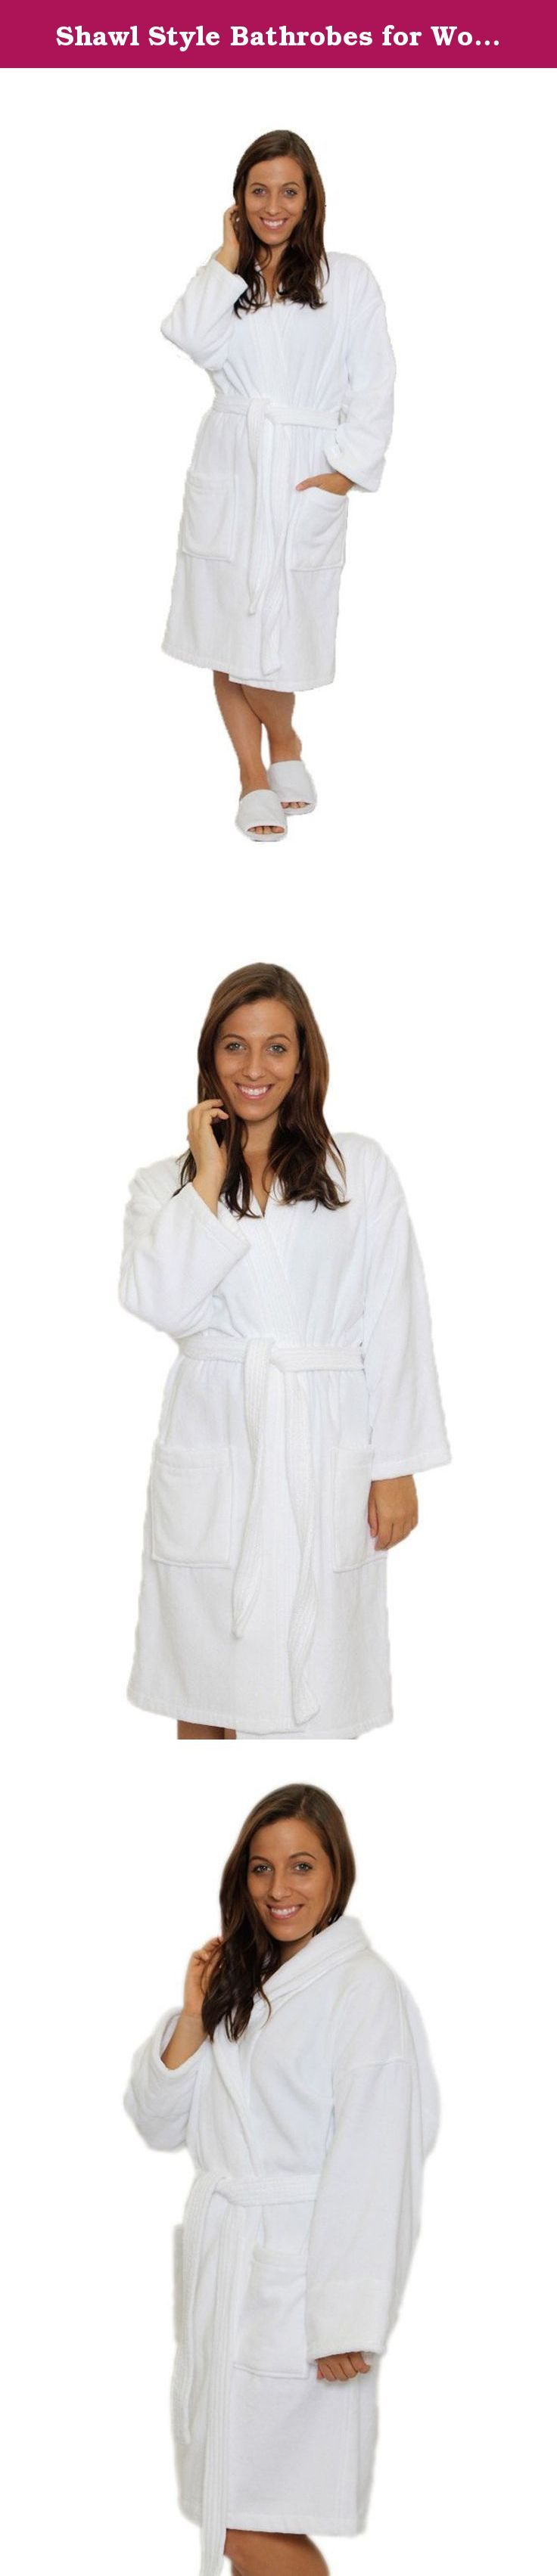 Shawl Style Bathrobes for Women Mens Robes, SMALL / MEDIUM, WHITE. Our 100% absorbent Cotton terry on the inside and velour on the outside Shawl bathrobe is perfect for womens and mens! Wrap yourself from head to toe in this thick luxurious robe and keep warm all winter long. Perfect after the hot tub, shower or sauna! It is absorbent and exceptionally soft against the skin, a little luxury to slip on after showering or anytime. Has two pockets, belt and belt loops, roomy fit, no need to...